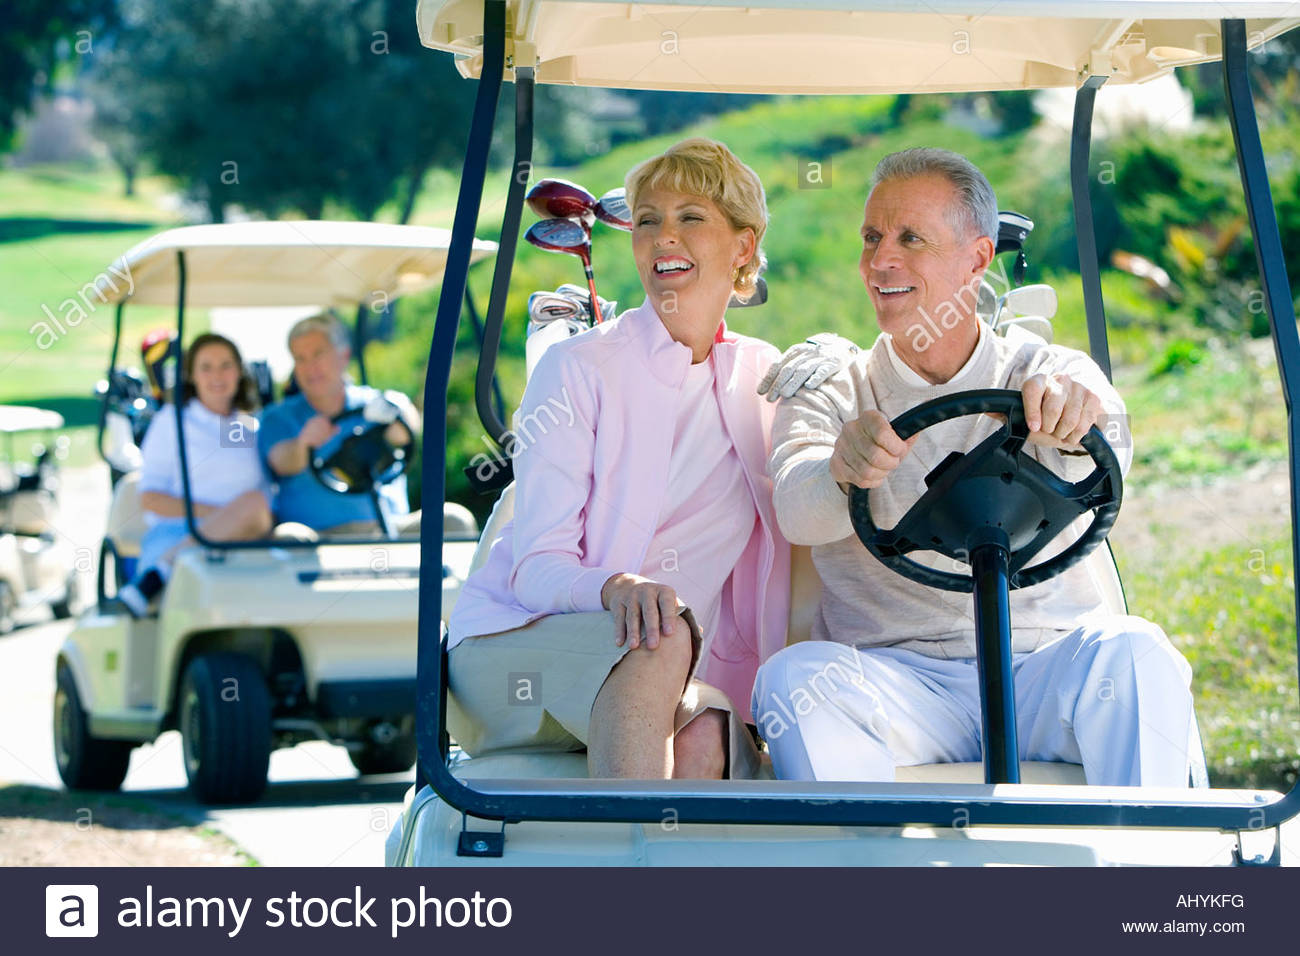 Two mature couples driving golf buggies along golf course pathway, focus on couple in foreground, smiling - Stock Image